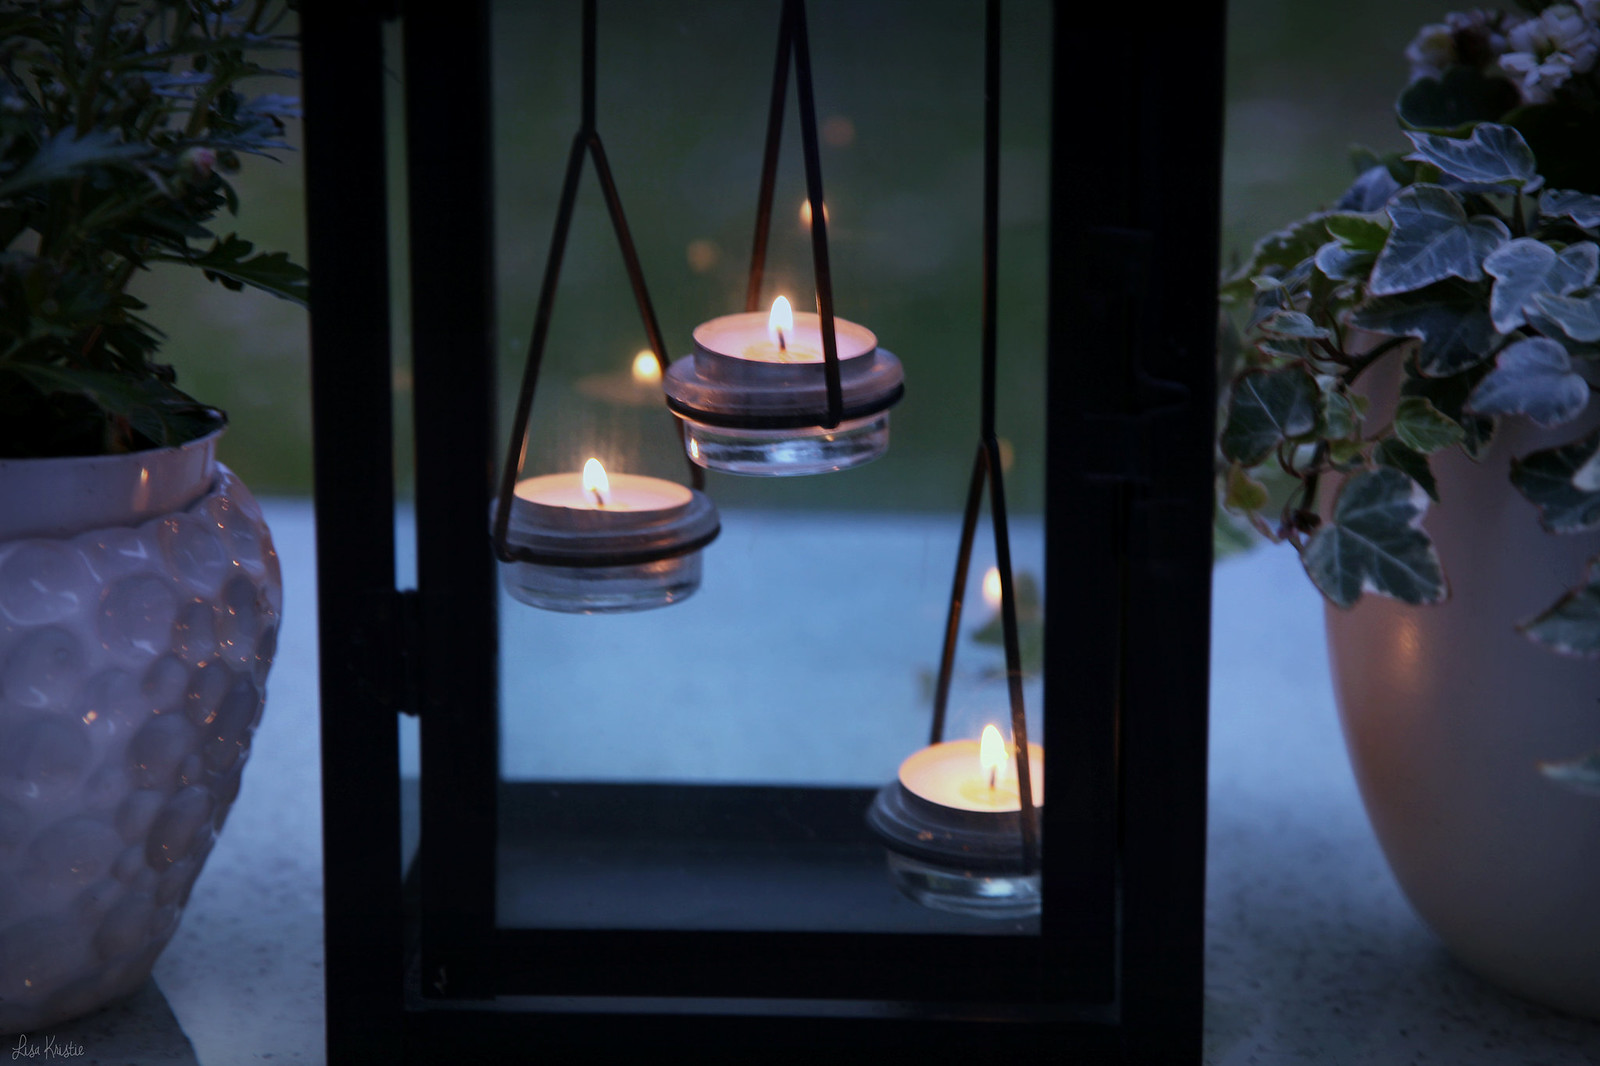 dark evening patio candles tea lights table outside outdoor potted plants fall dusk